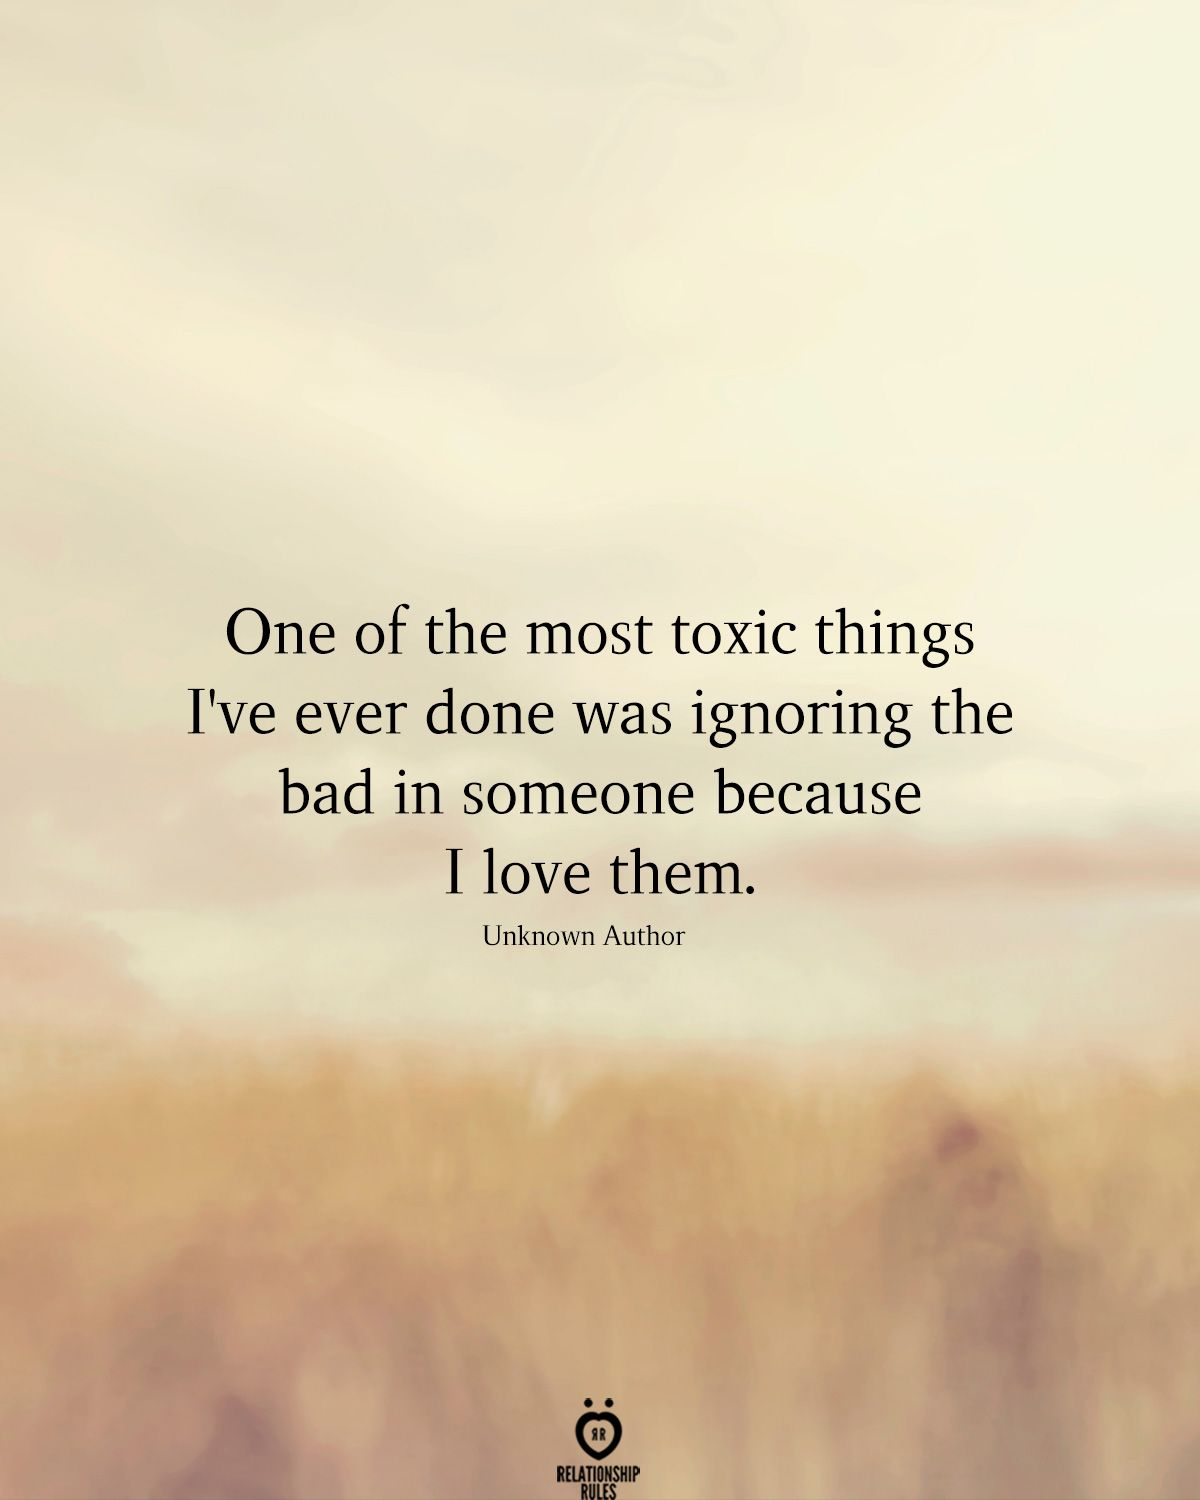 One Of The Most Toxic Things I've Ever Done Was Ignoring The Bad In Someone Because I Love Them